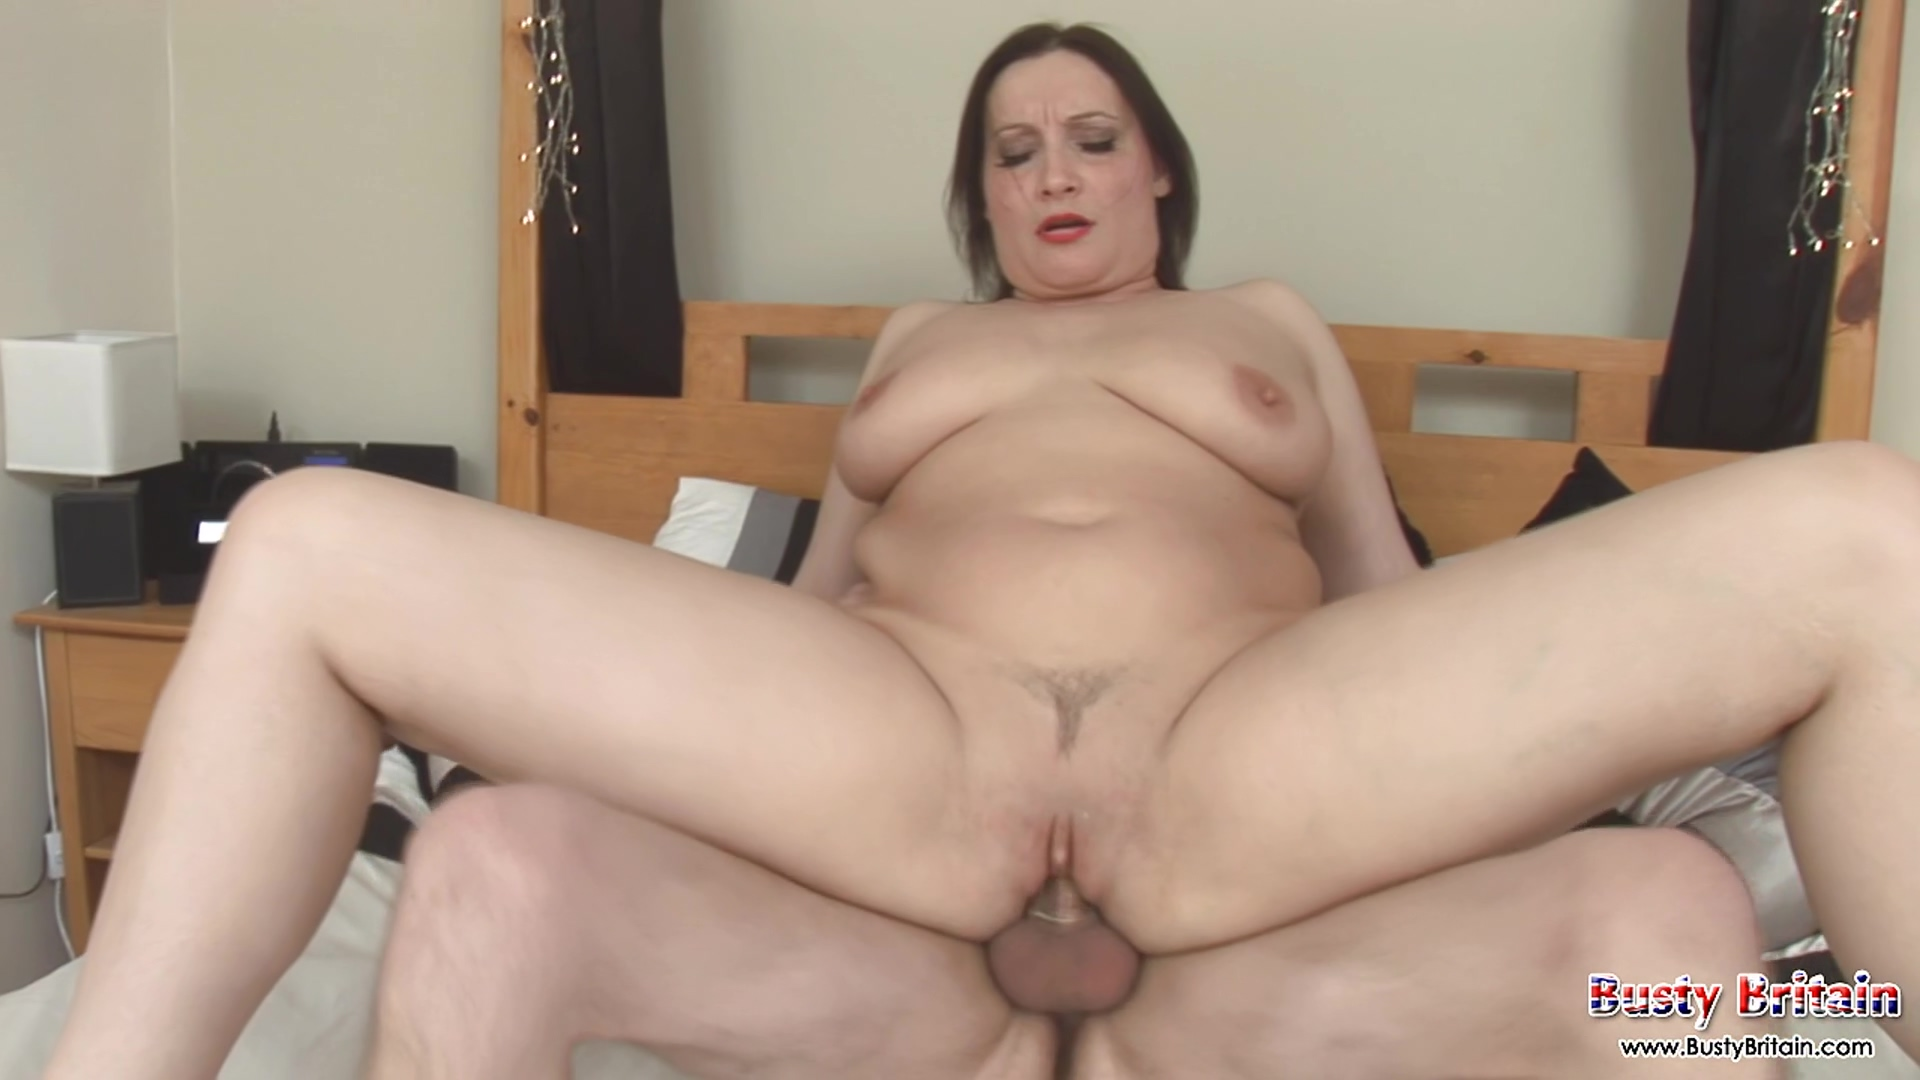 Hollie Benton Is A Female Who Wants To Fuck